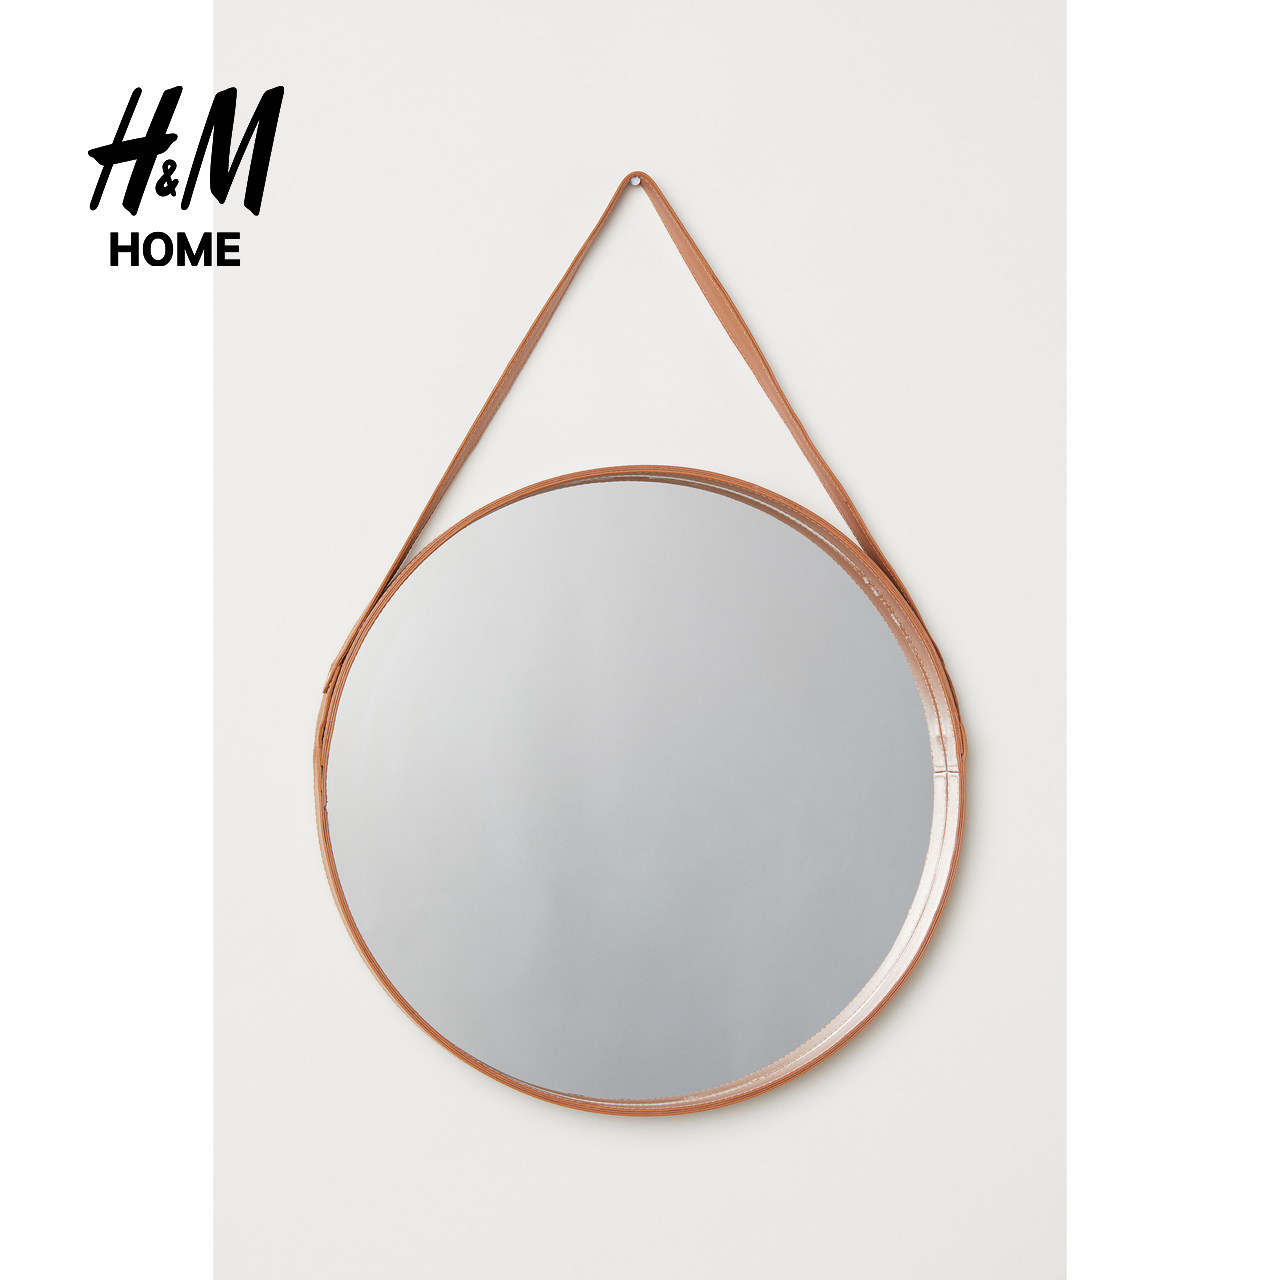 round leather mirror hanging hm home supplies modern genuine leather box round large glass mirror stickers wall hanging hm0536042 usd 15903